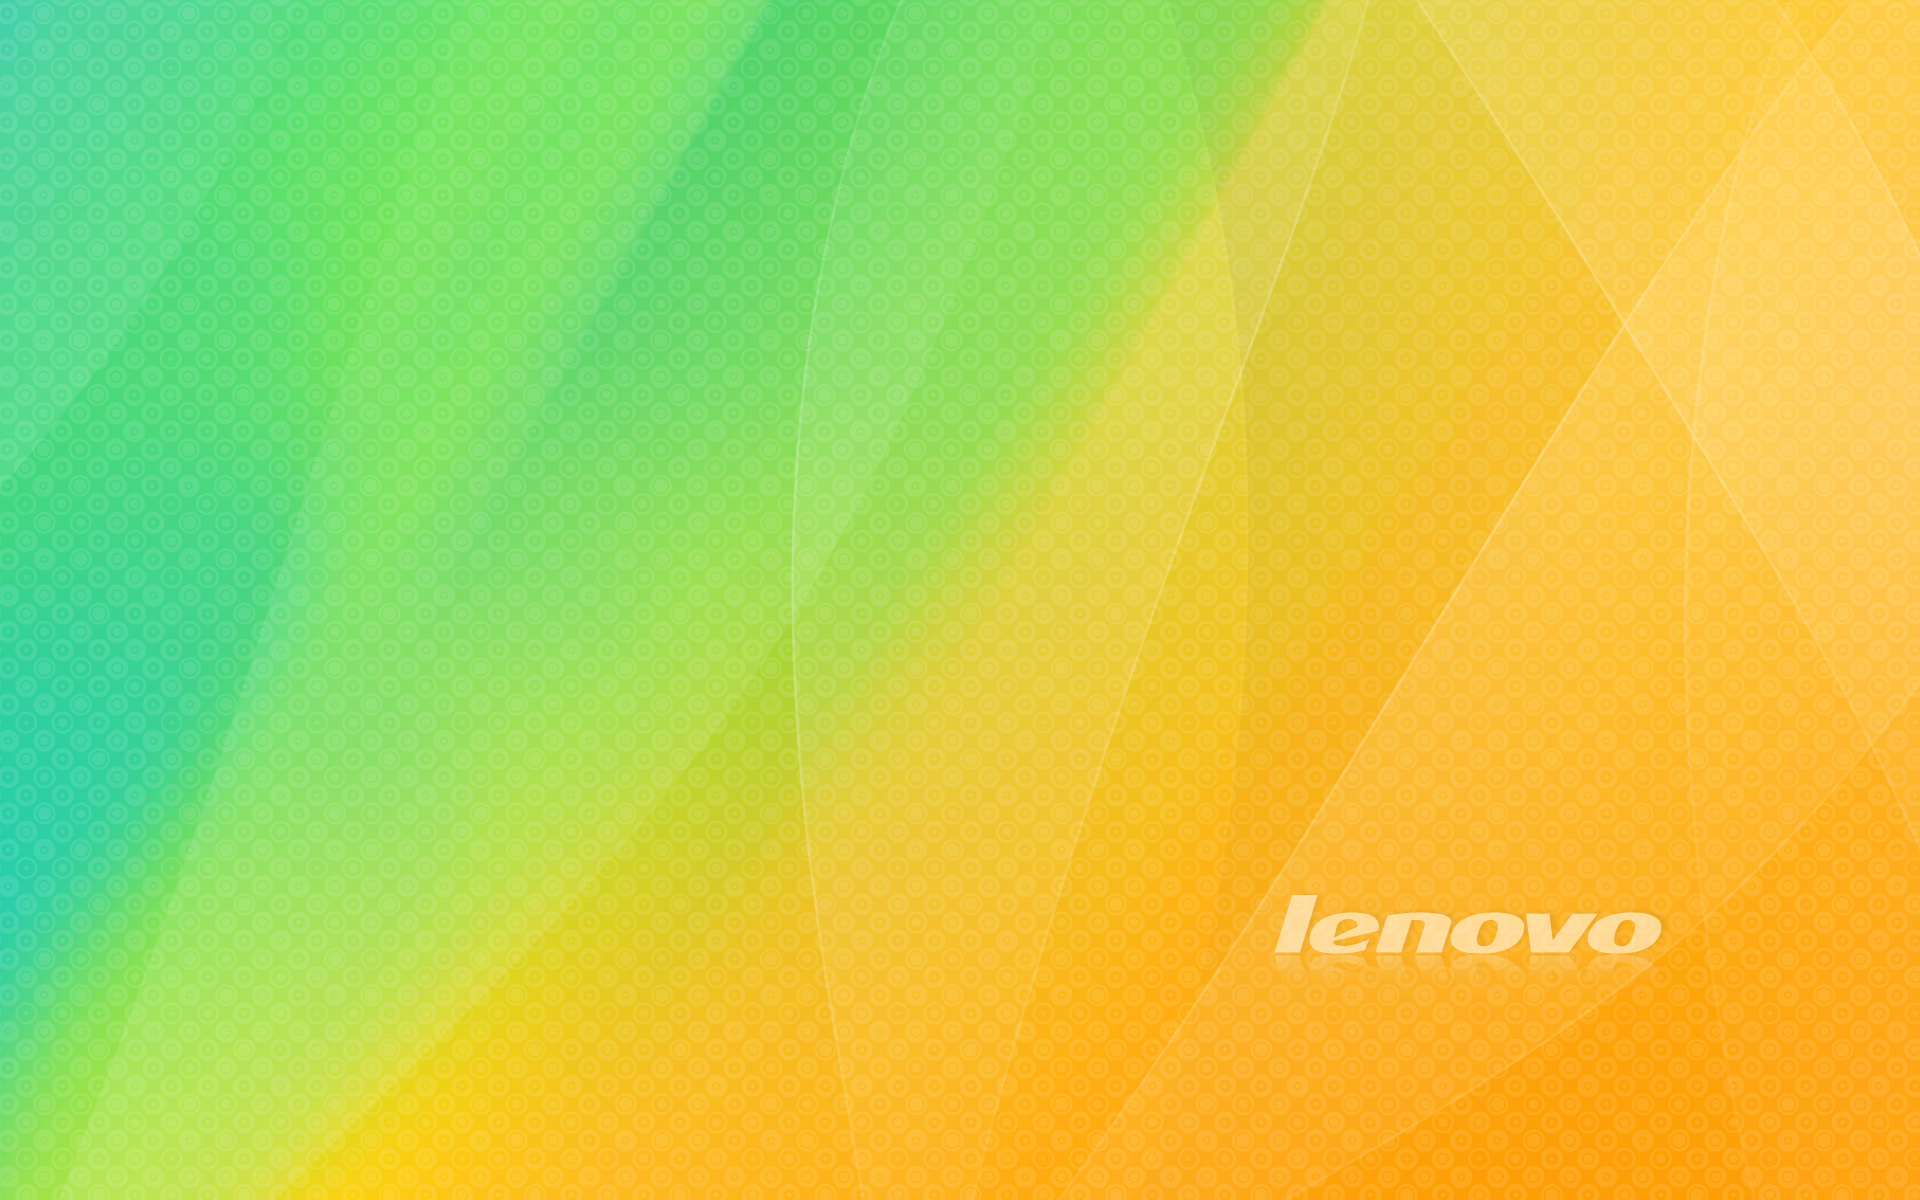 download lenovo web background review thinkblue backgrounds thinkpad 1920x1200